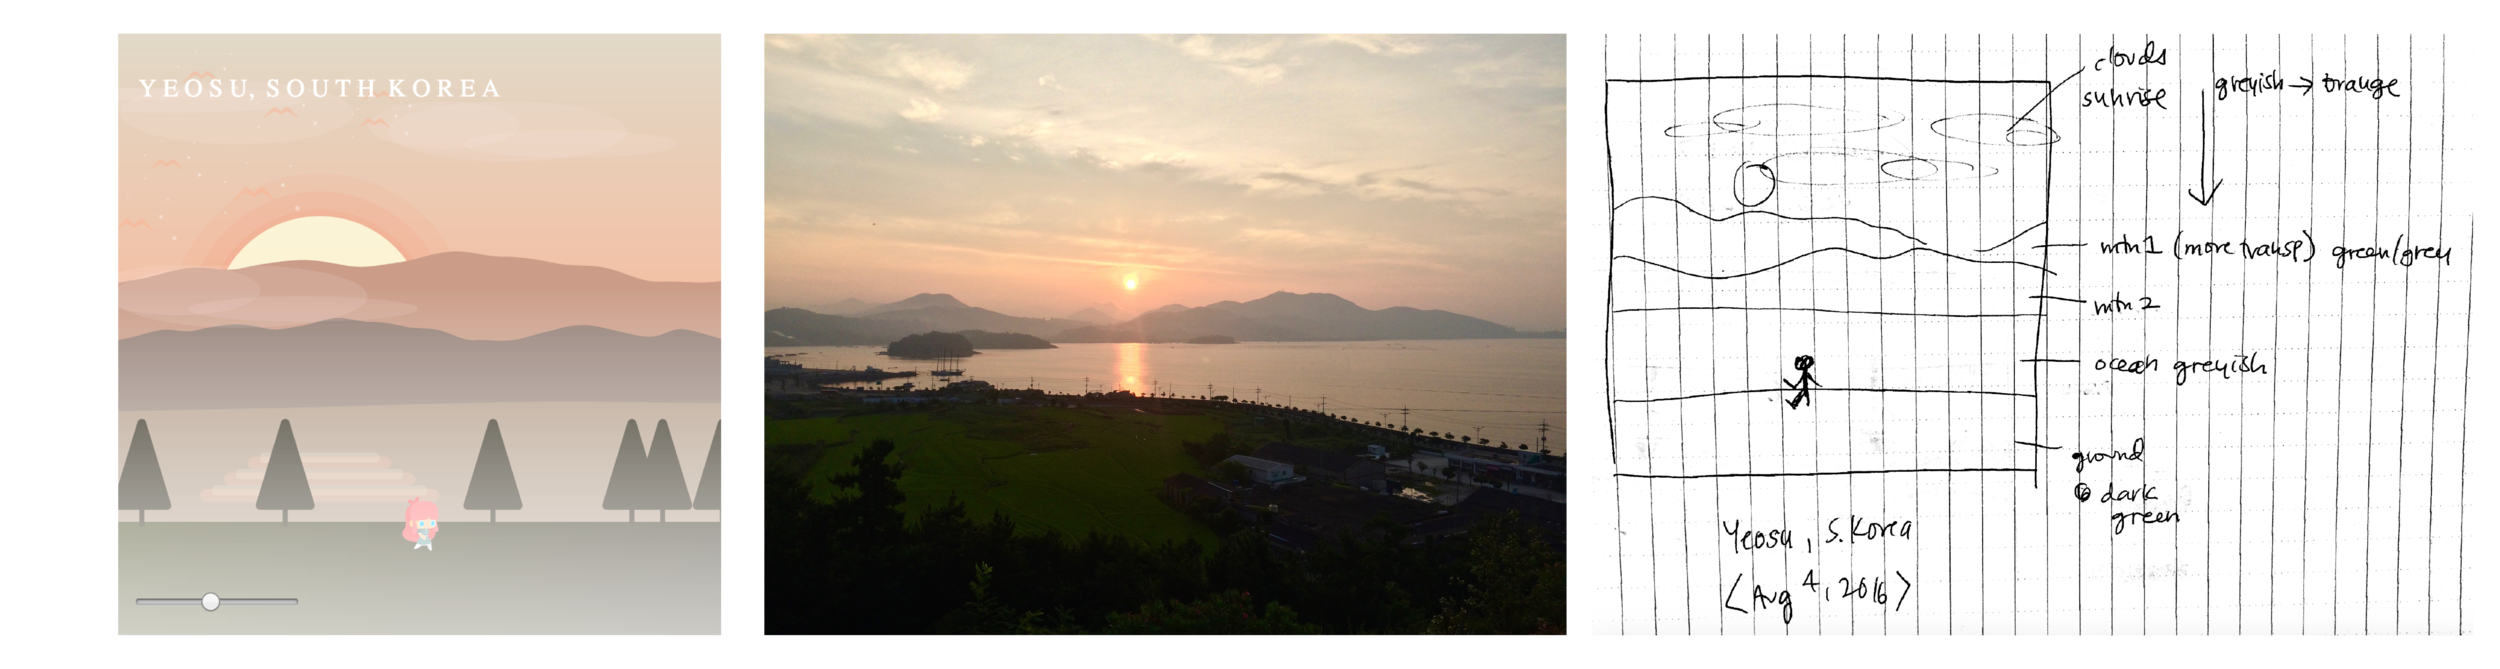 Scene 1 – Sunrise at Yeosu (Javascript, my photo, sketch)